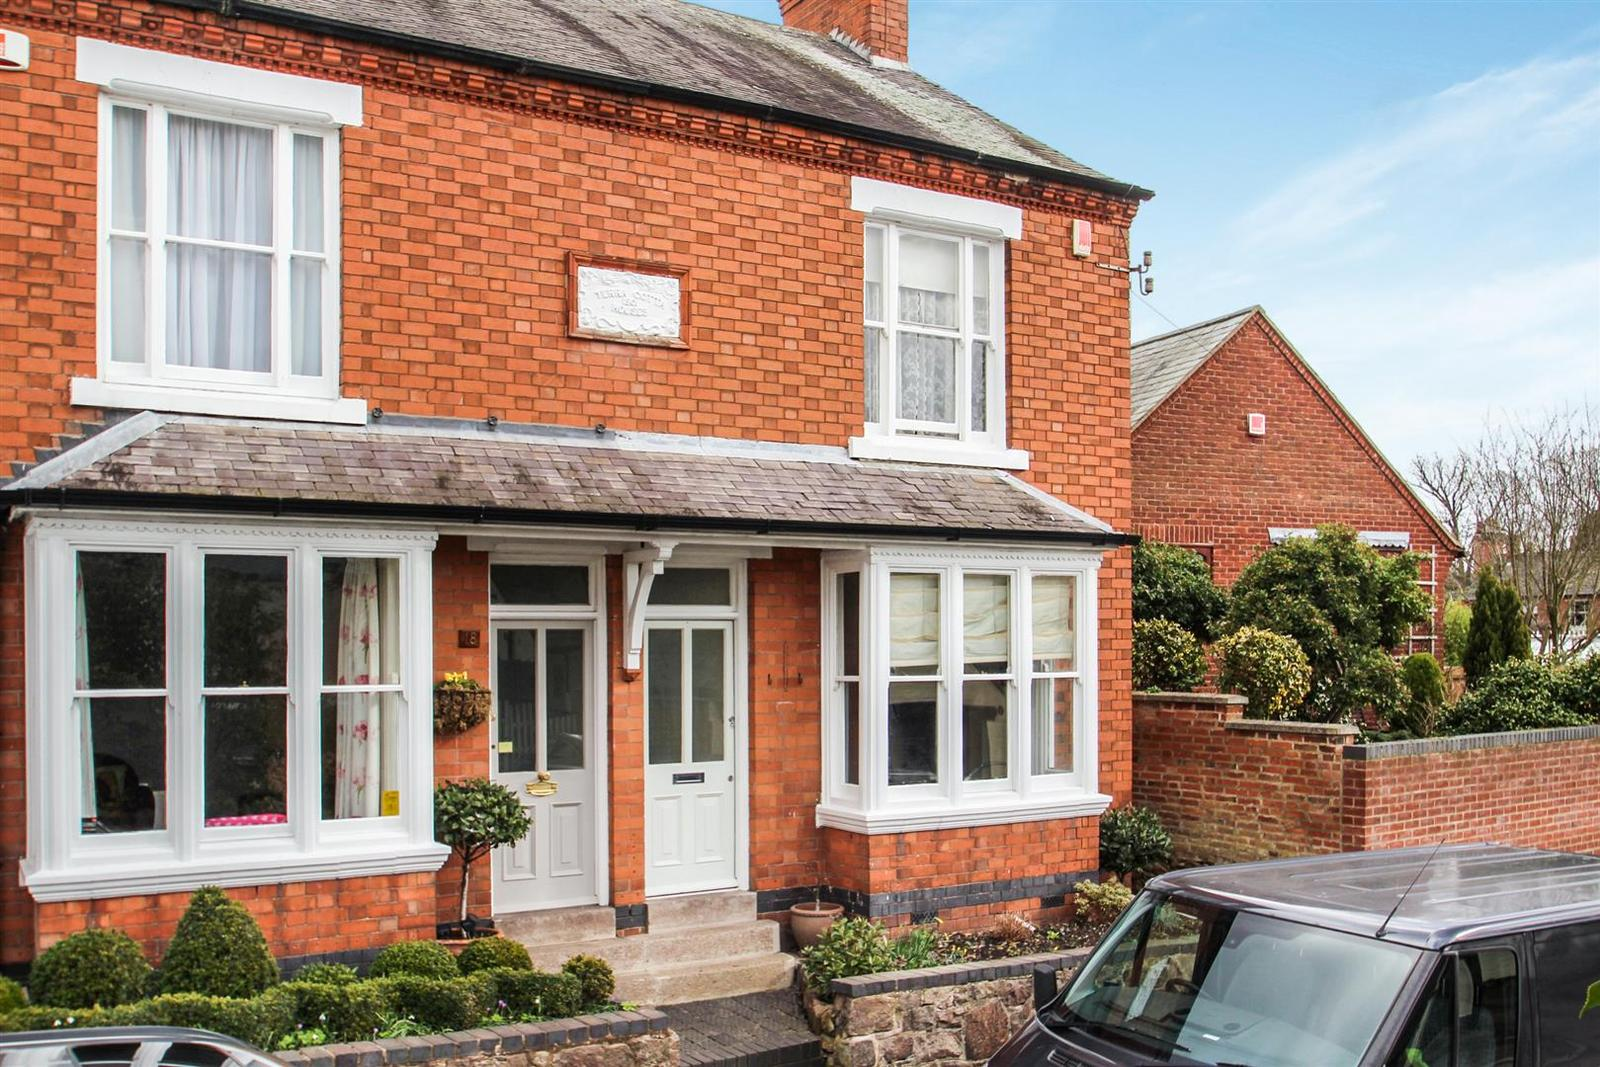 2 Bedrooms Detached House for sale in Anthony Street, Rothley, Leicester